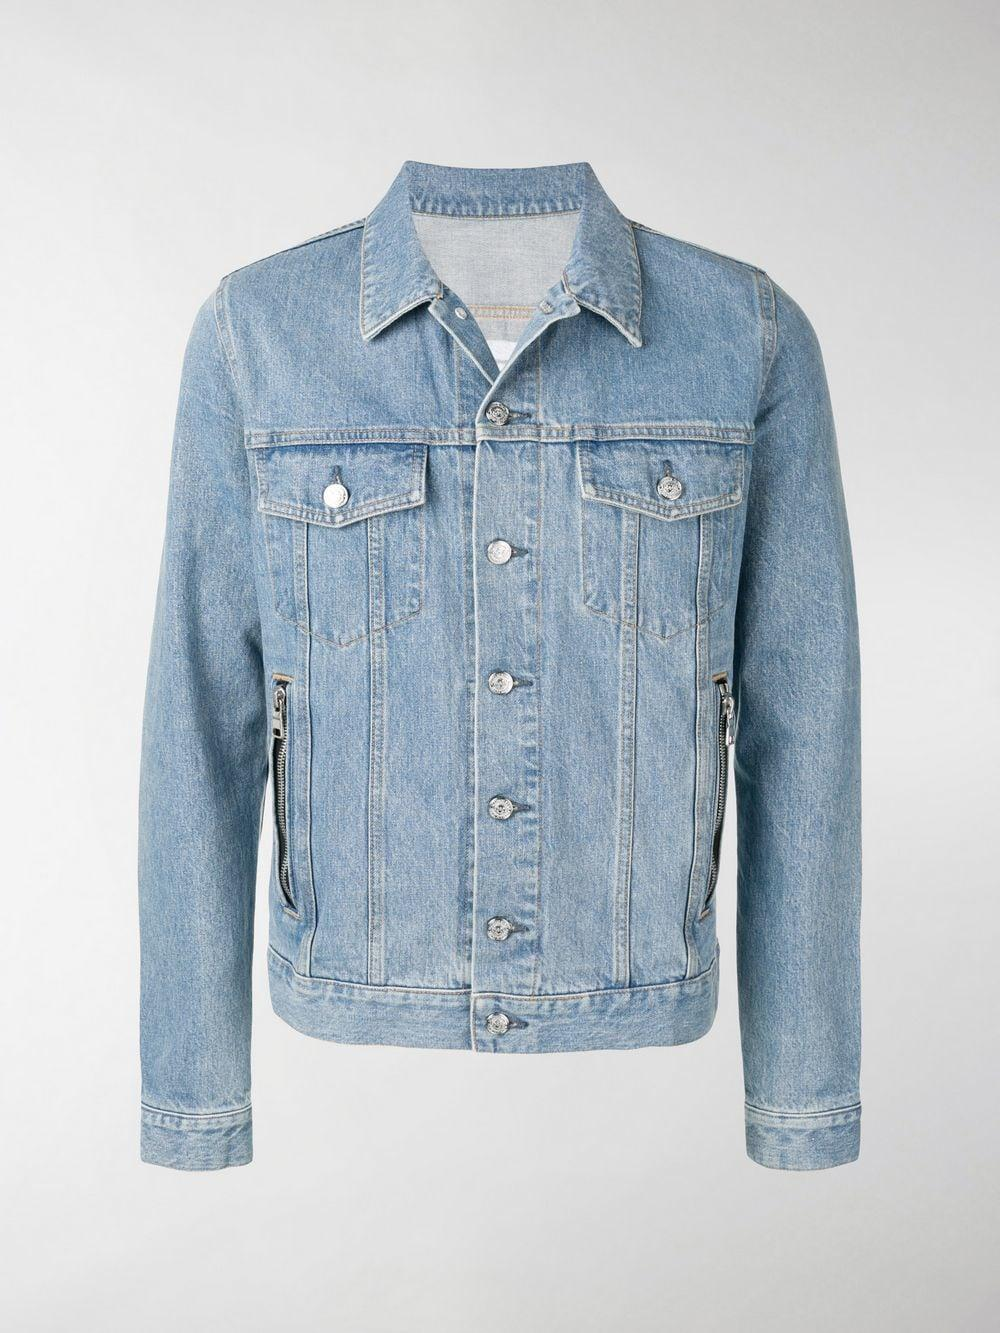 7df0c9f87b Lyst - Balmain Embroidered Logo Denim Jacket in Blue for Men